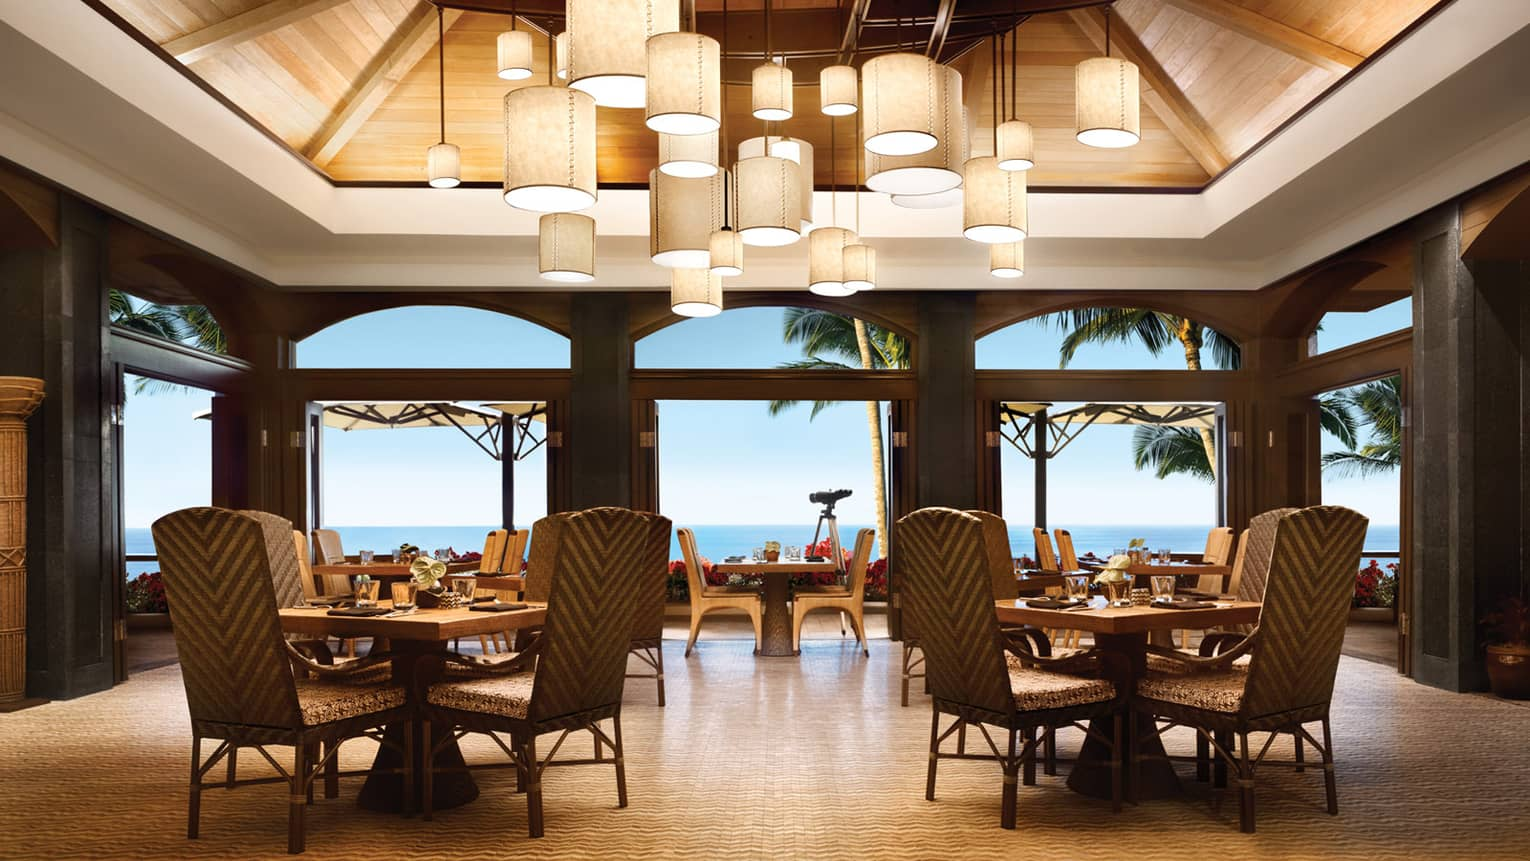 Views Restaurant dining room, tables and chairs under vaulted ceilings with modern lanterns